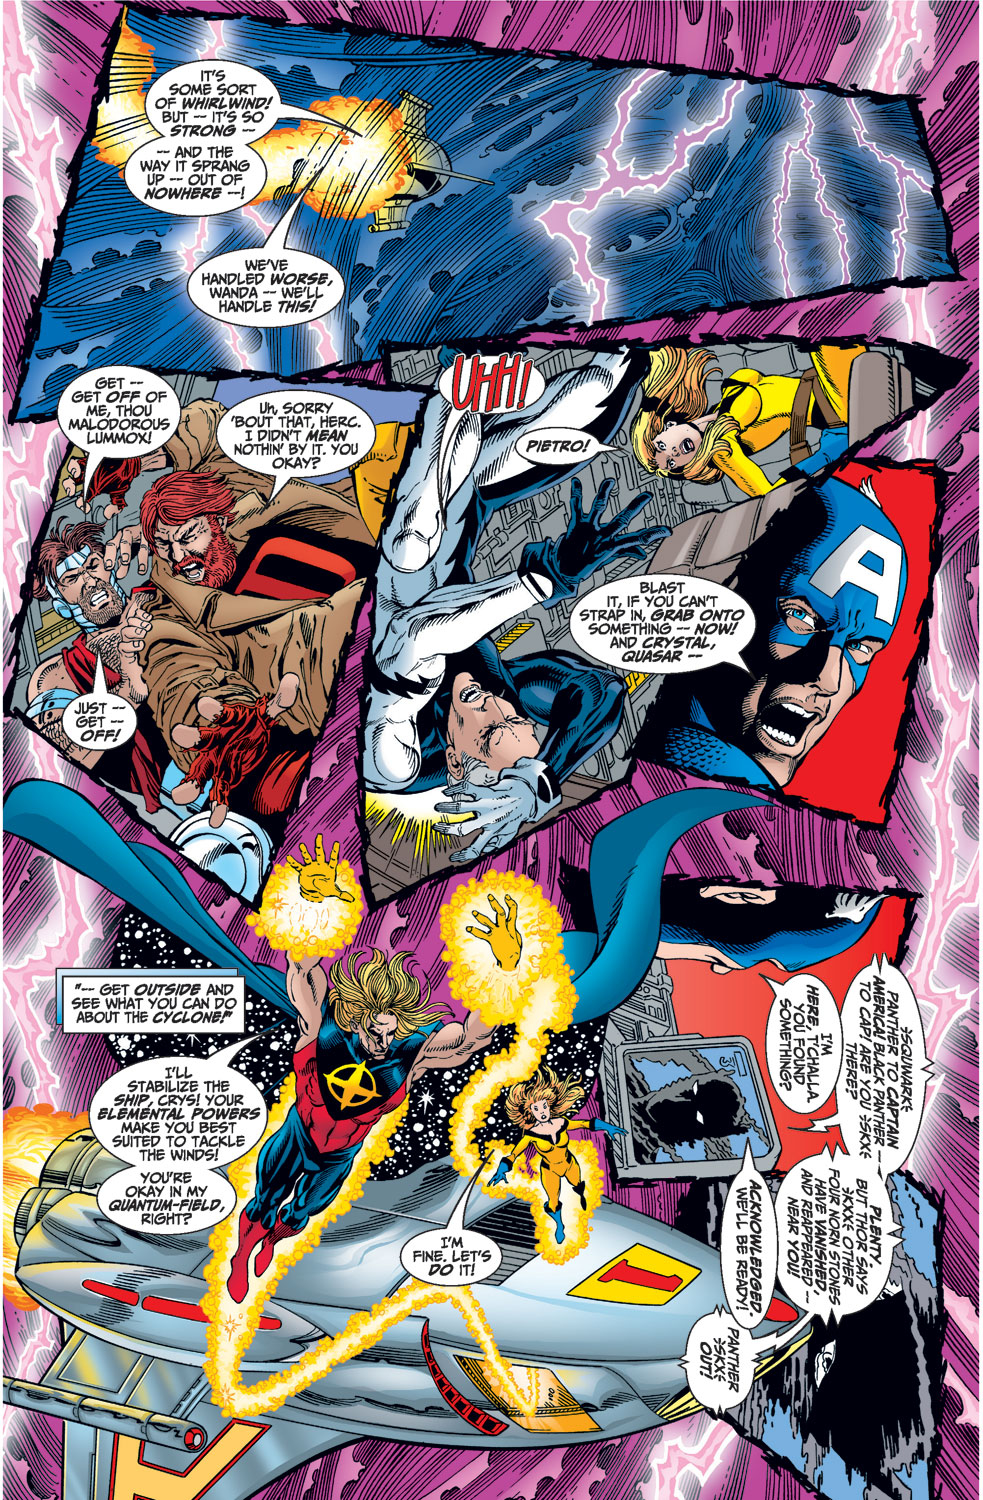 Read online Avengers (1998) comic -  Issue #1 - 28